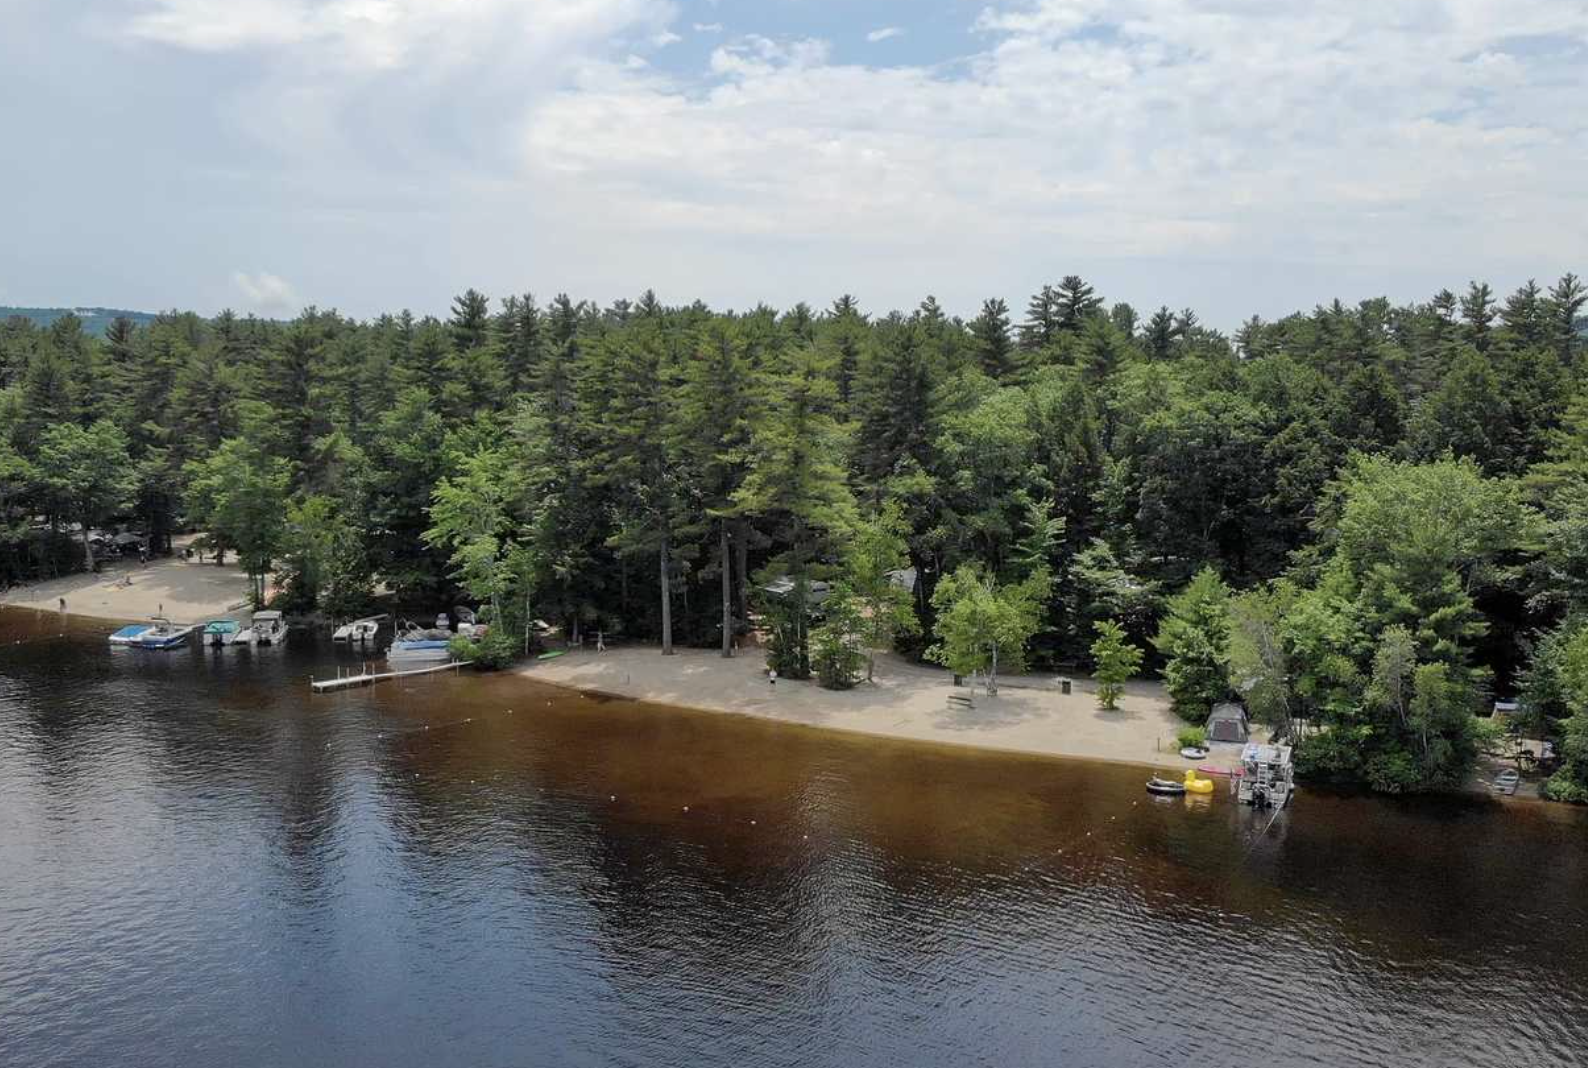 Aerial view of lake at Yogi Bear campground with woods in background